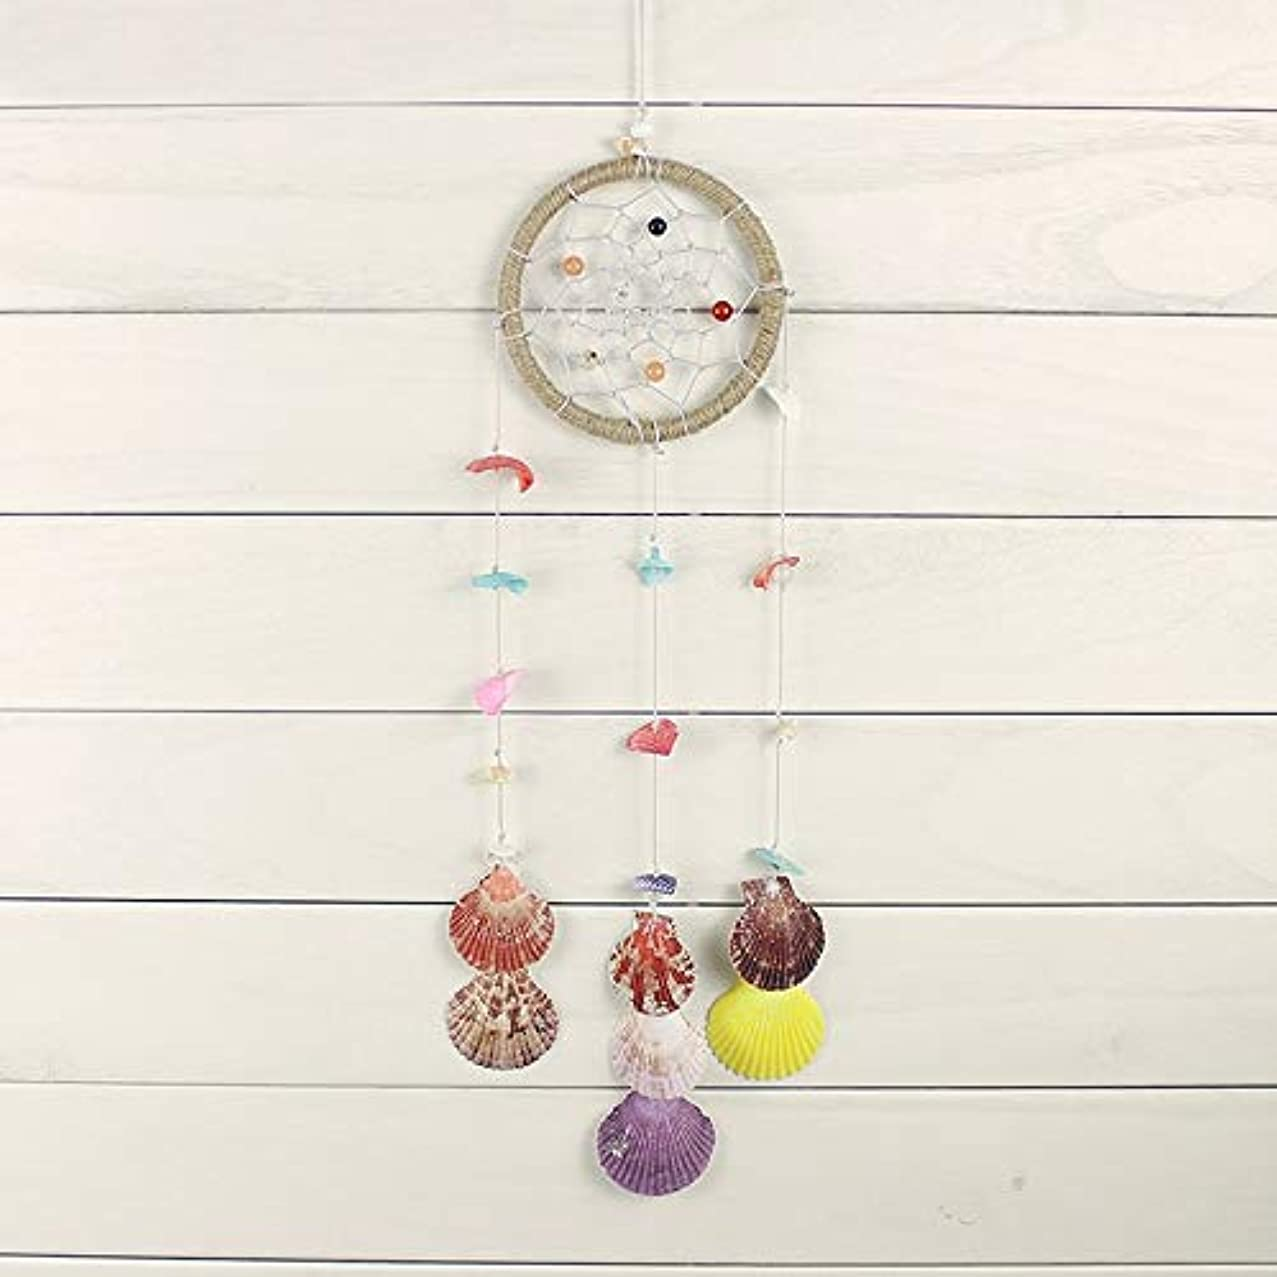 Souvenir Wedding - Beautiful Shells Wind Chimes Hanging Decoration Exquisite Seashell Windbell Aeolian Crafts Ornaments - Wedding Beach Gift Souvenir Boxes